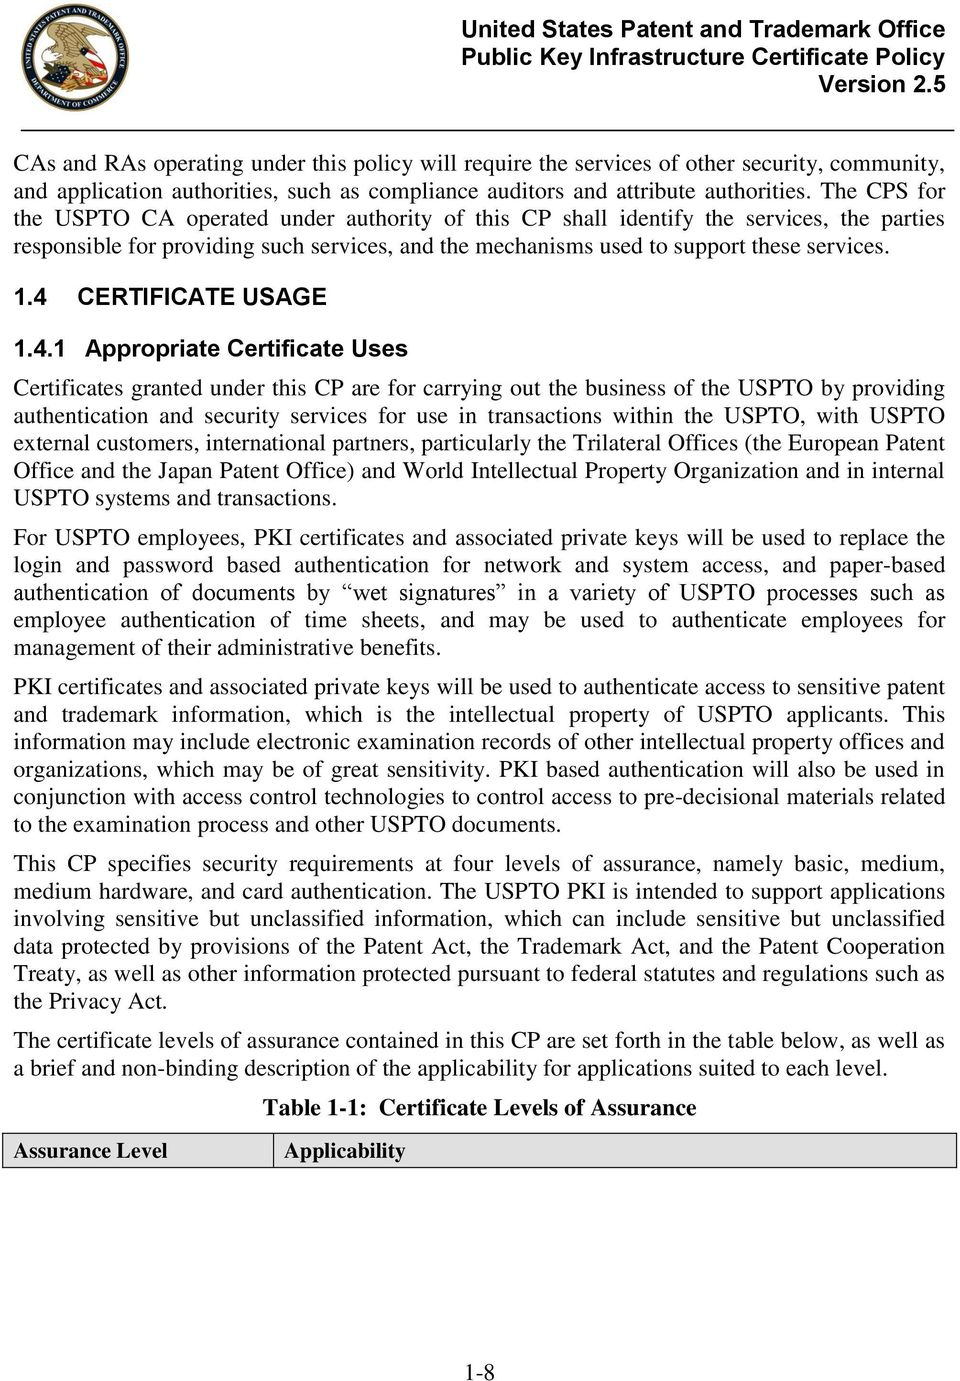 4 CERTIFICATE USAGE 1.4.1 Appropriate Certificate Uses Certificates granted under this CP are for carrying out the business of the USPTO by providing authentication and security services for use in